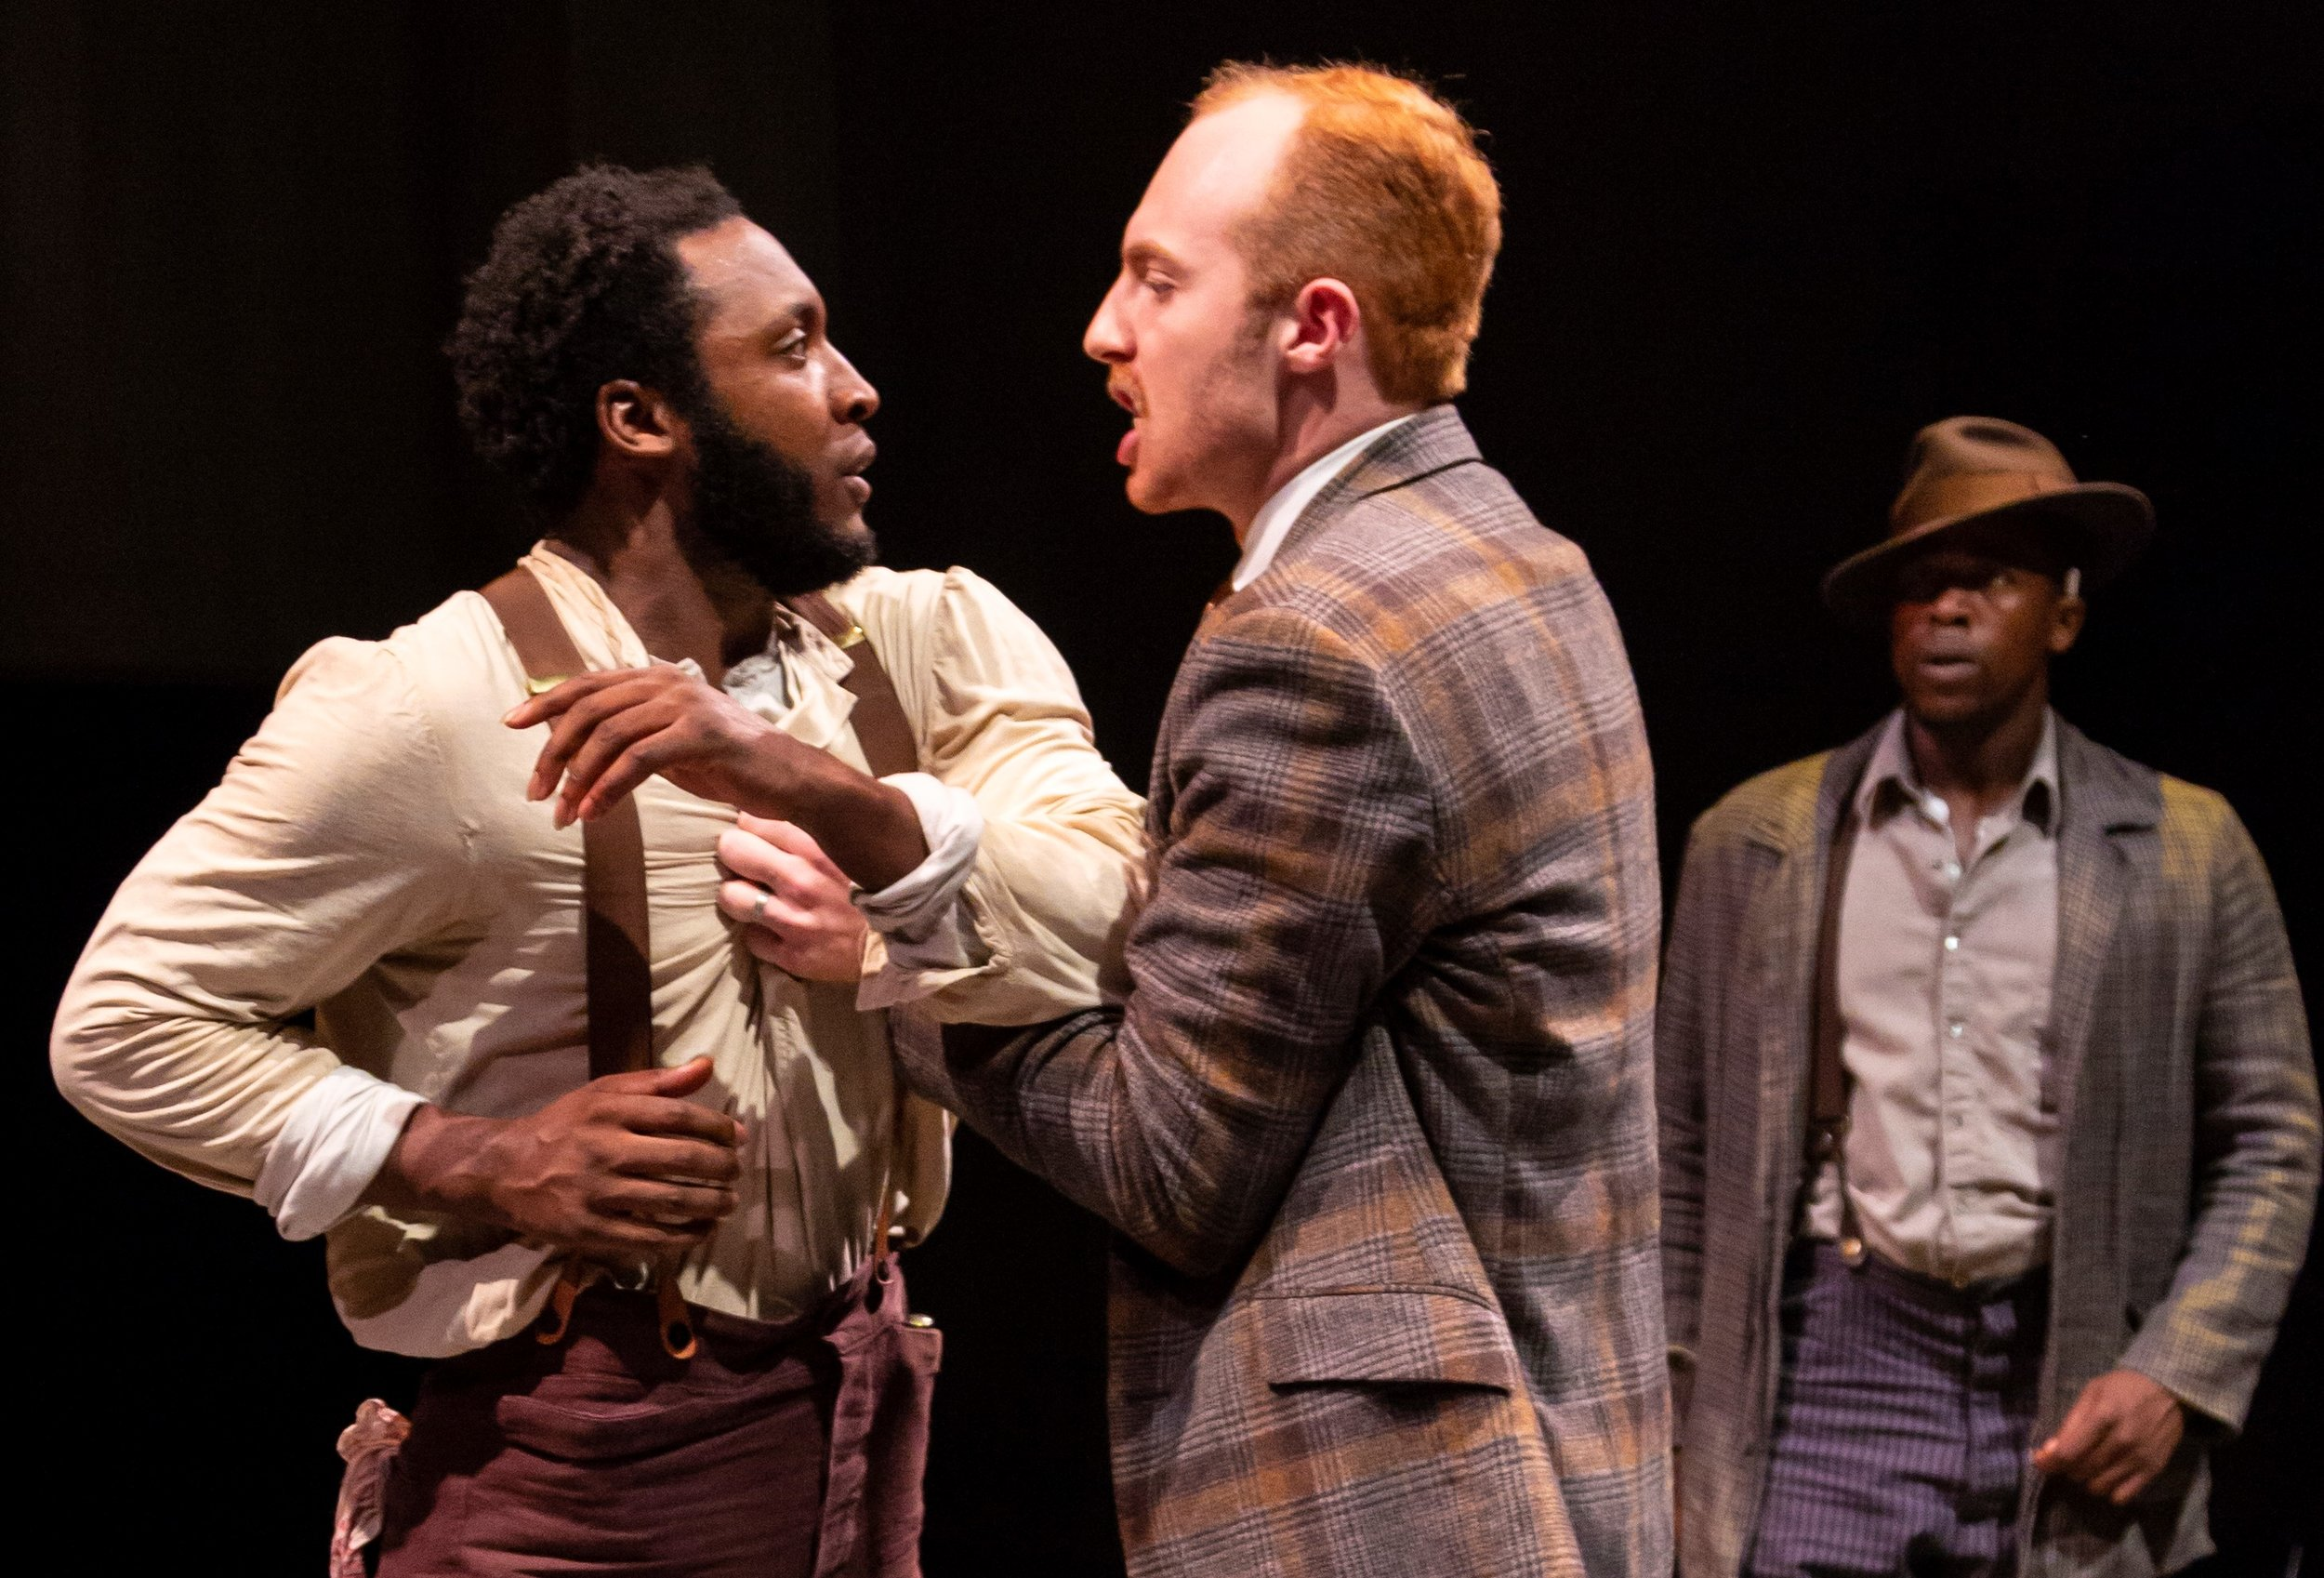 Galen Ryan Kane (left) is Bigger Thomas, and Henry Jenkinson is Mr. Britten, a private investigator looking into a socialite's disappearance, in  Native Son.  Jason Bowen (right) as Bigger's alter ego, the Black Rat, stands by helplessly.